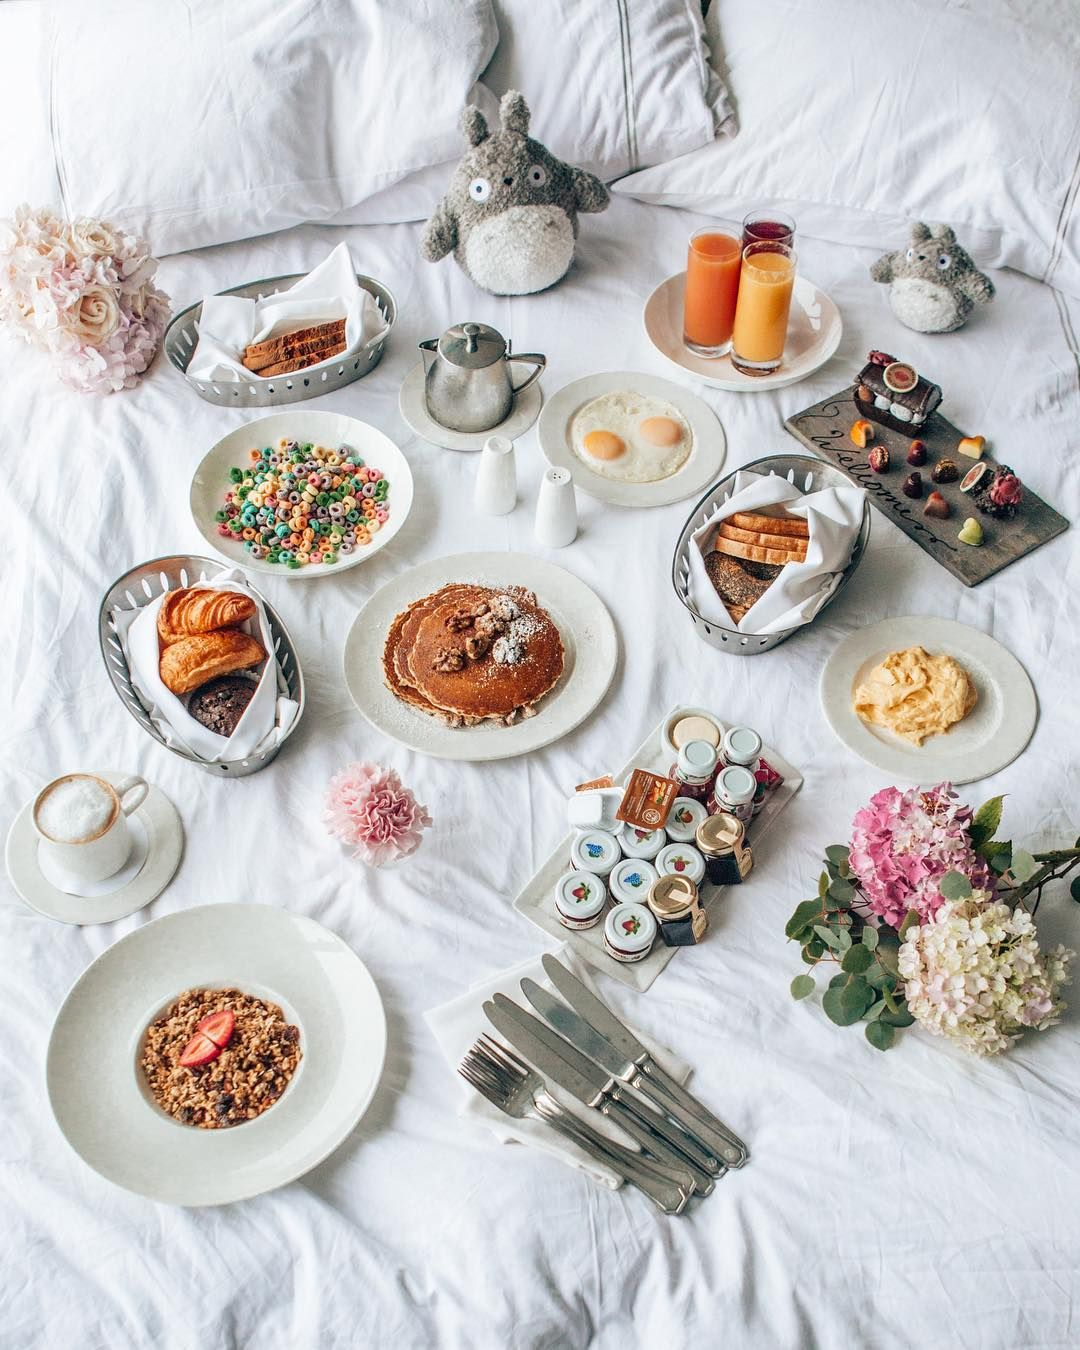 Bed and breakfast at fairmont san francisco by madeline lu